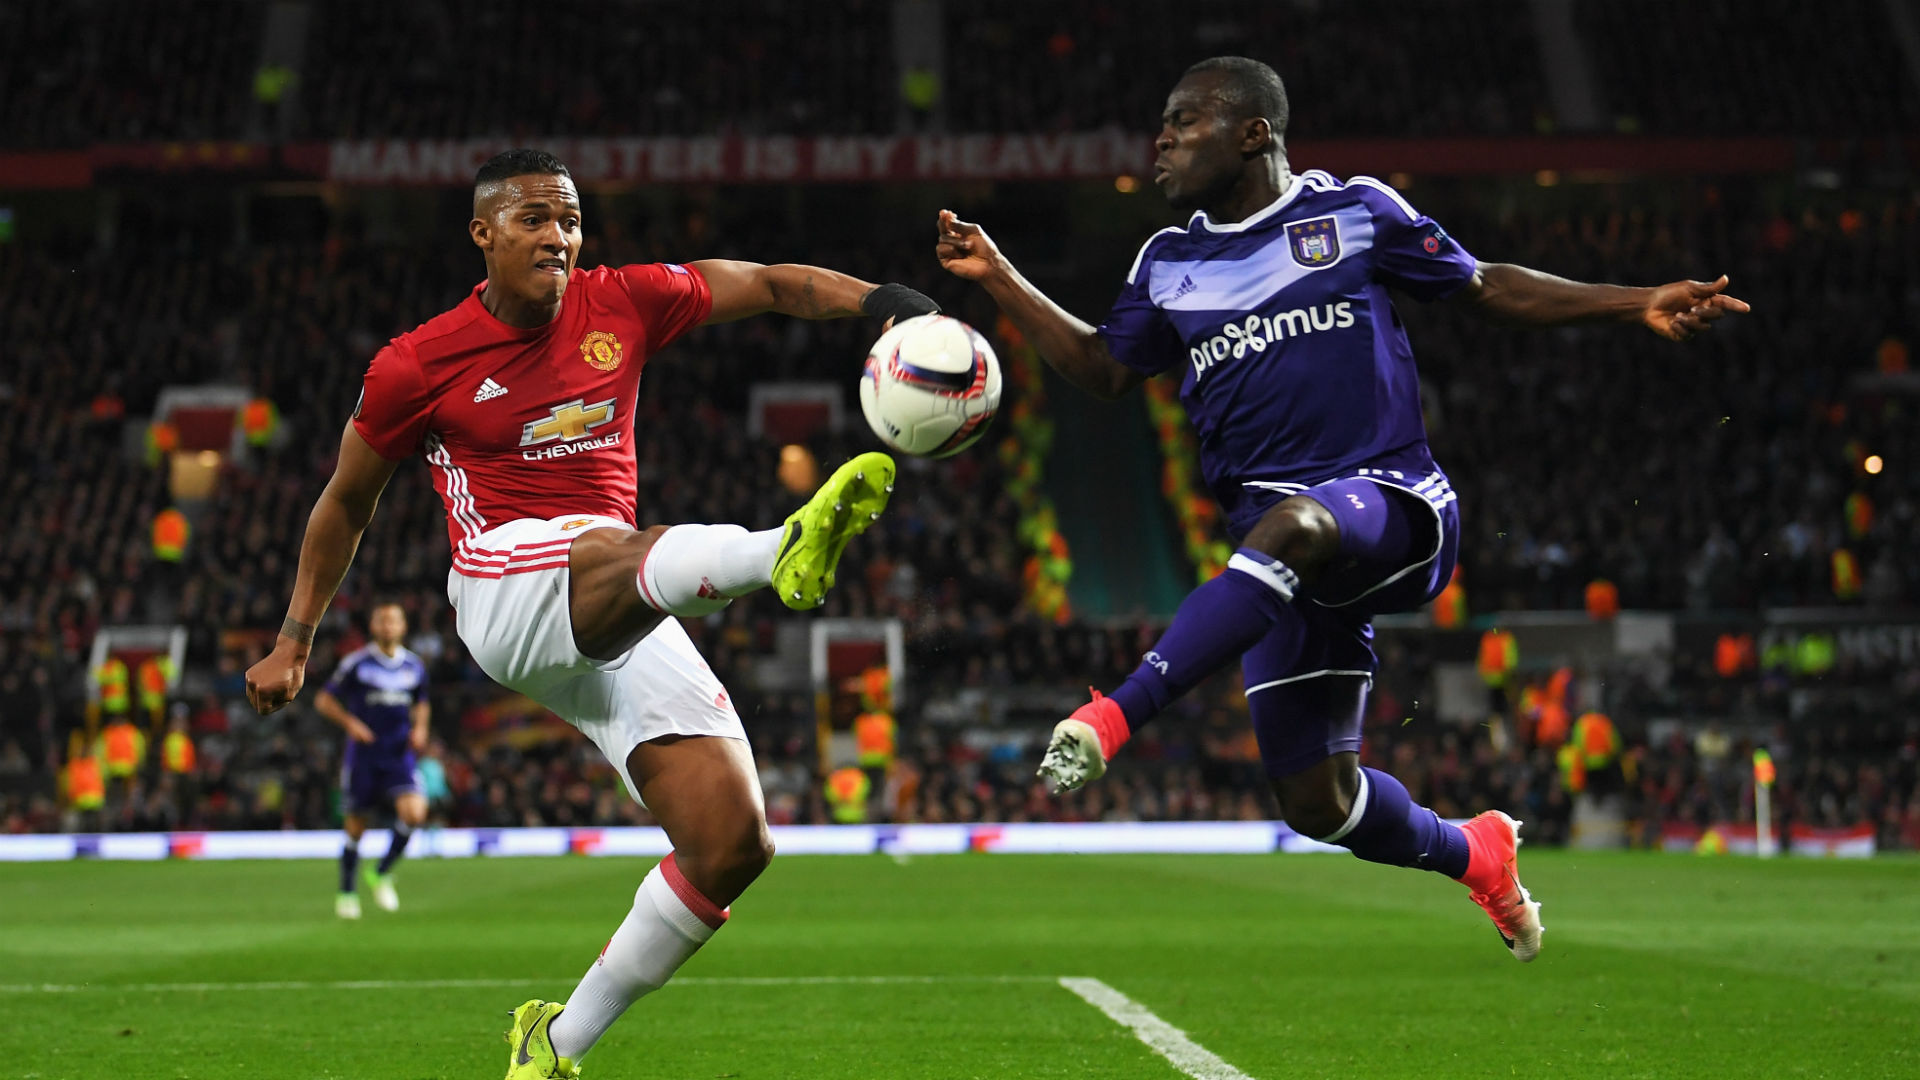 Frank Acheampong's Europa League dream ends at Manchester United | Goal.com